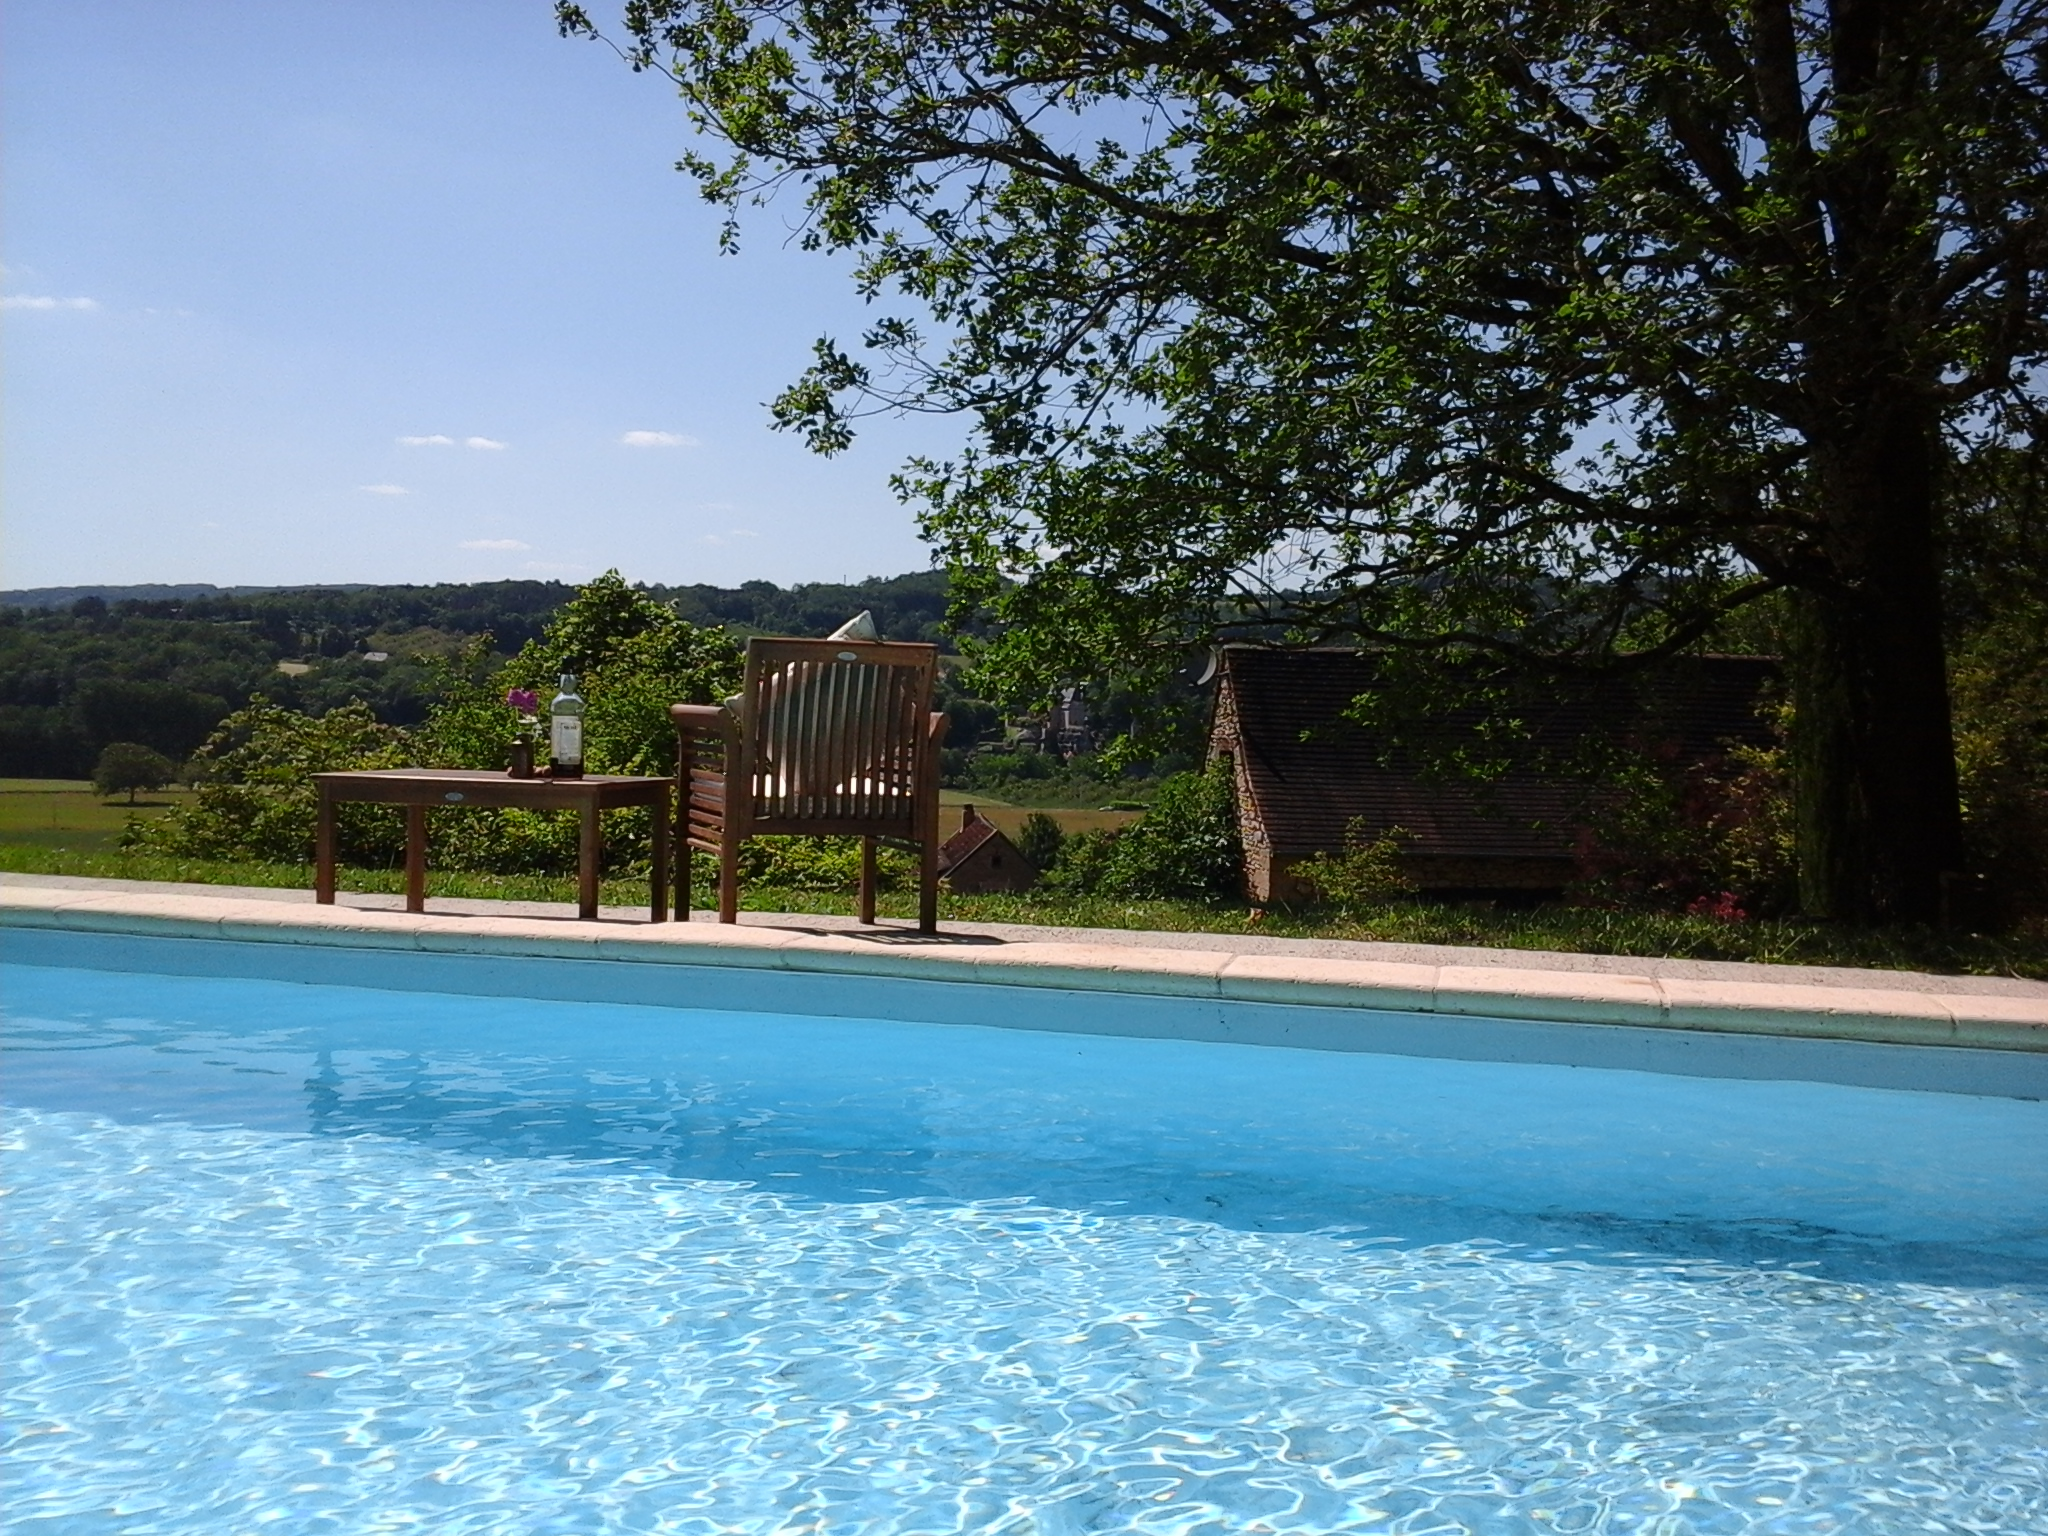 Relax by the pool with a wonderful view over the Vezere Valley and Chateau de Belcayre